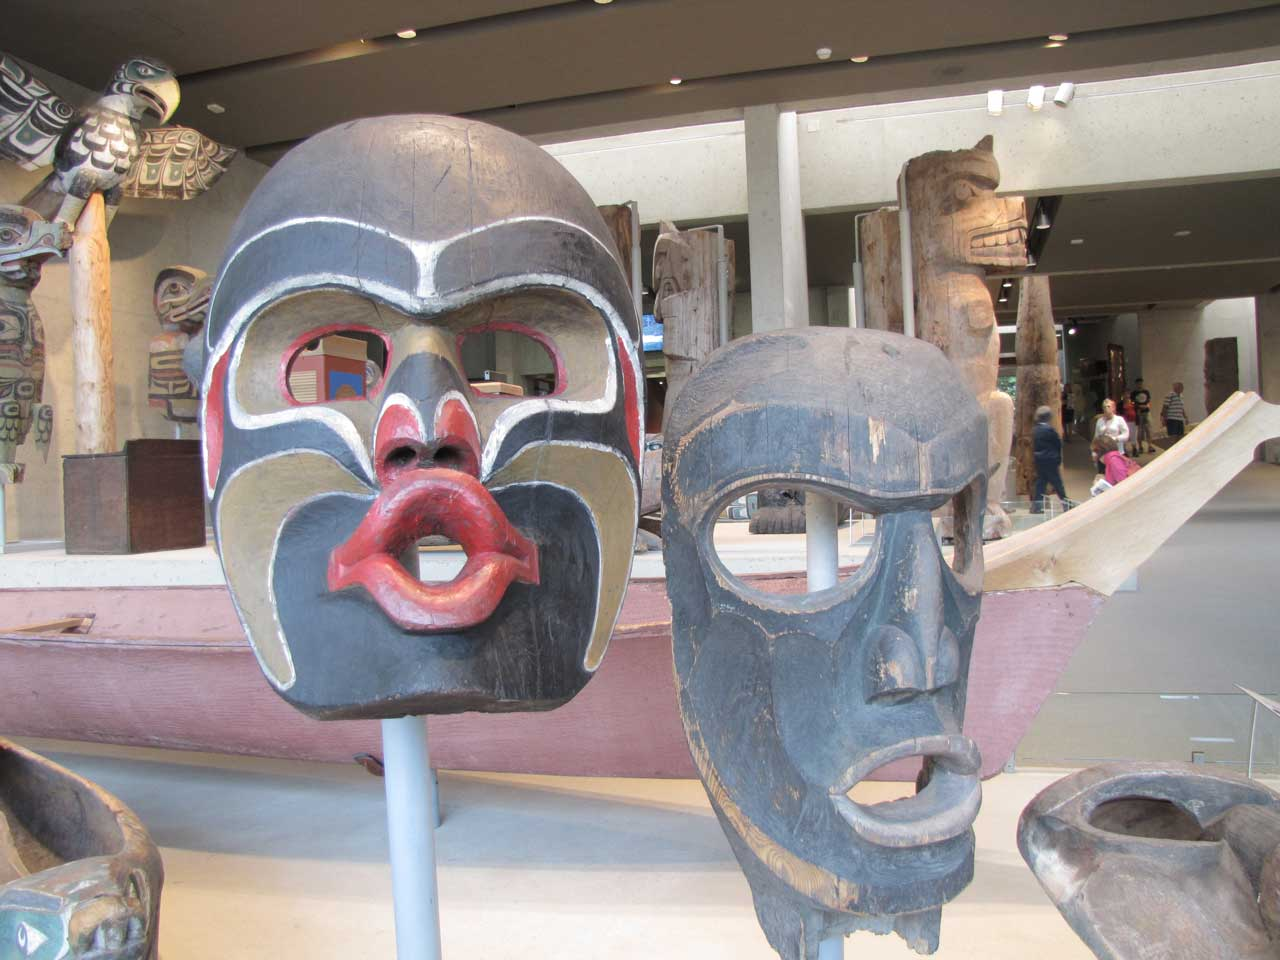 Nanaimo arts and culture native carvings at a museum